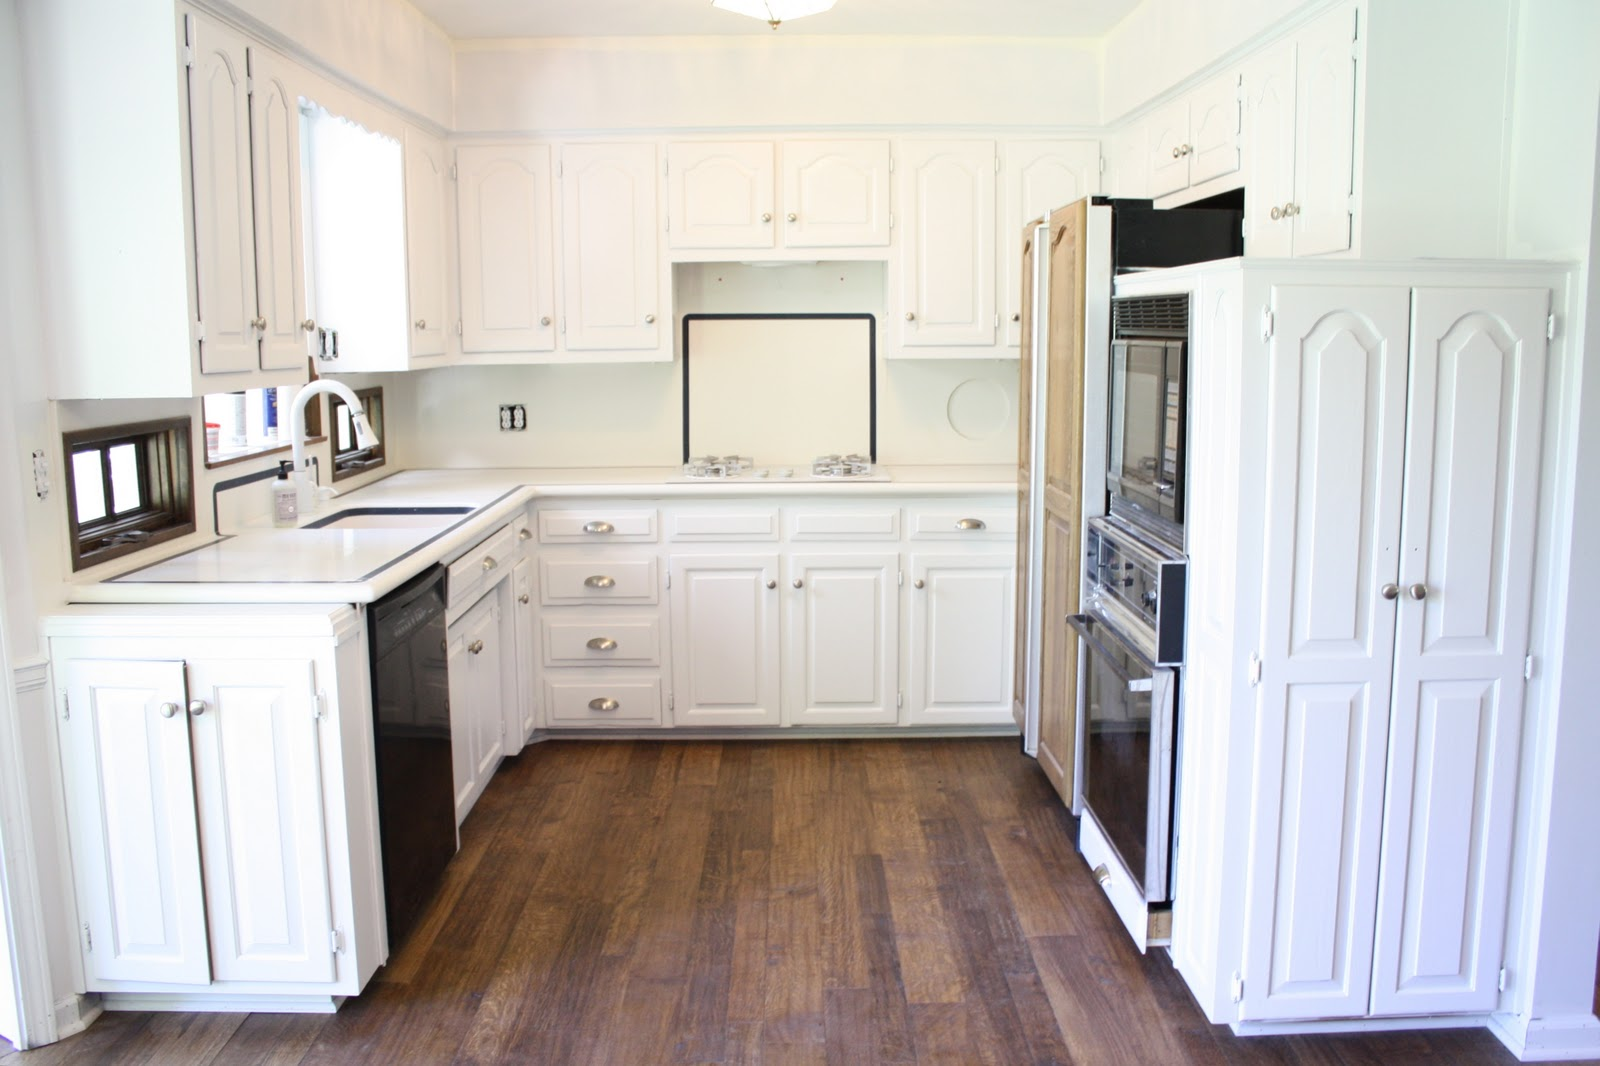 Pottery Barn Kitchen Furniture Updating A Home On A Budget Julie Blanner Entertaining Home